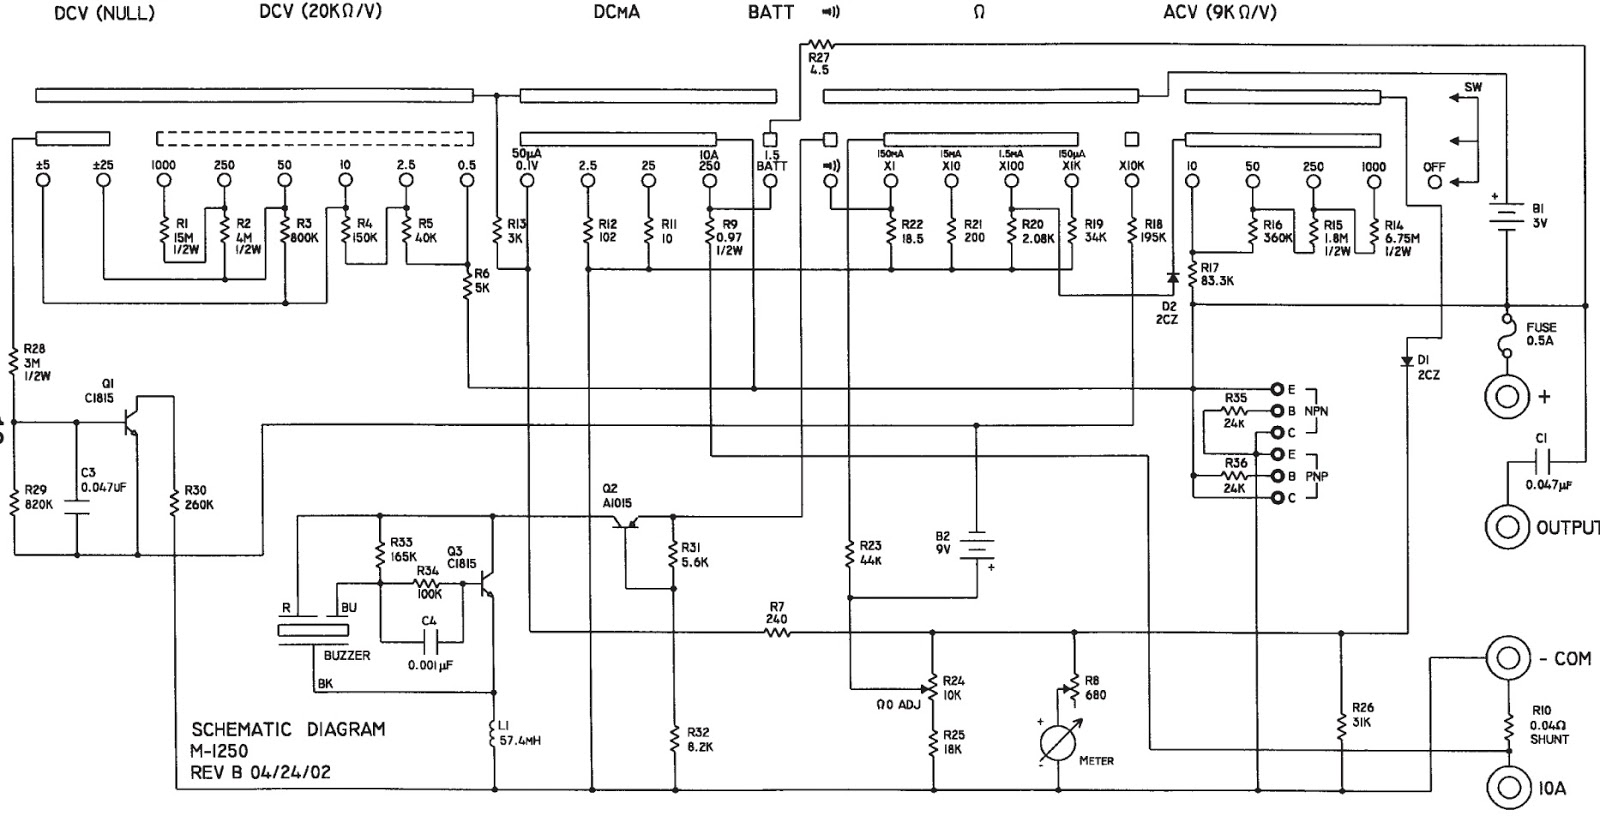 schematic diagrams metrawatt unigor 4s analog multimeter and cast rh schematicscom blogspot com sanwa analog multimeter circuit diagram analog multimeter circuit diagram+explanation pdf